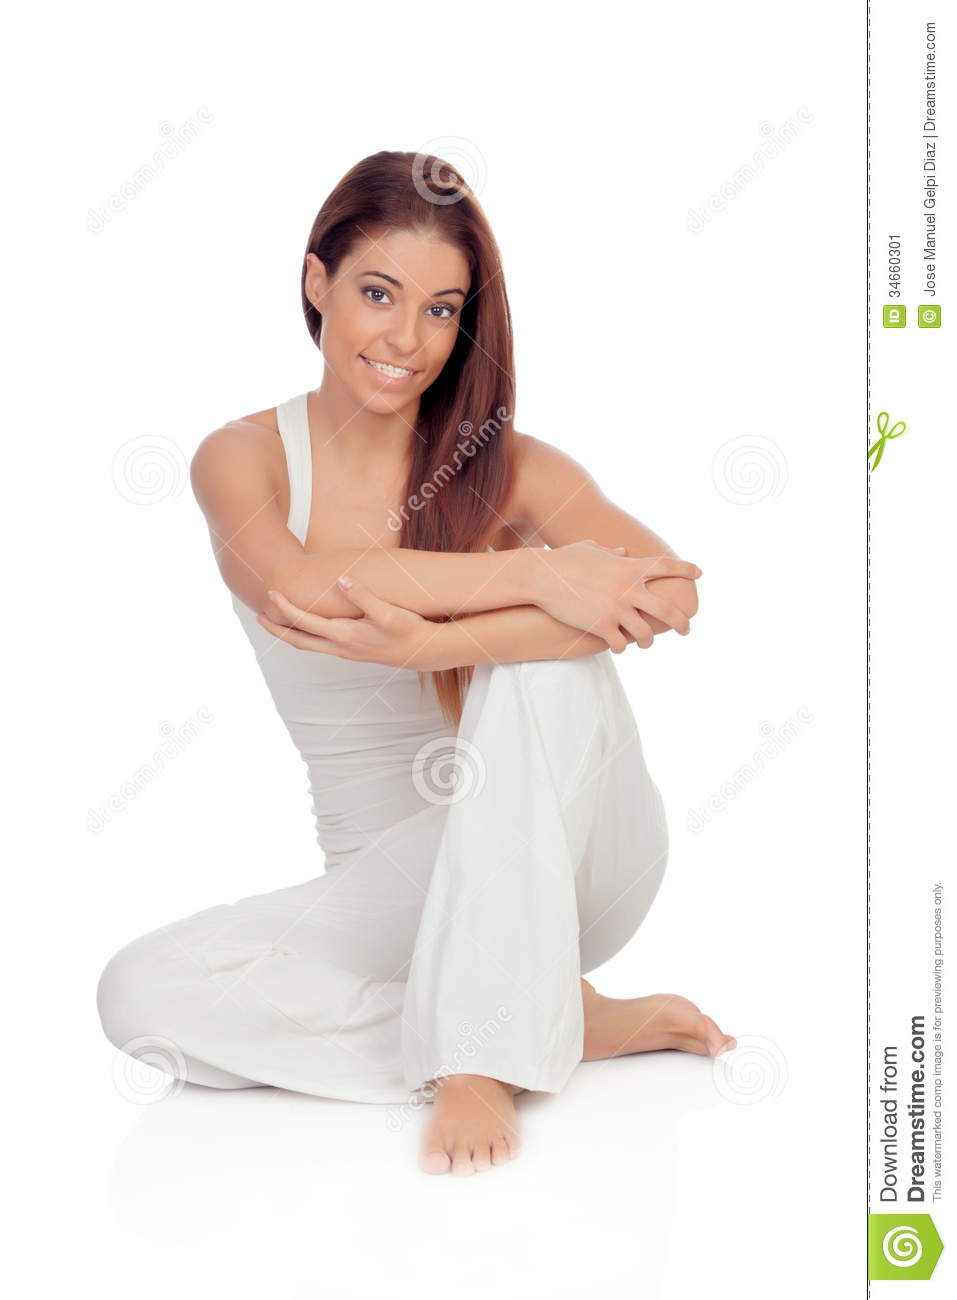 happy-young-woman-white-comfortable-clothing-sitting-floor-isolated-34660301.jpg